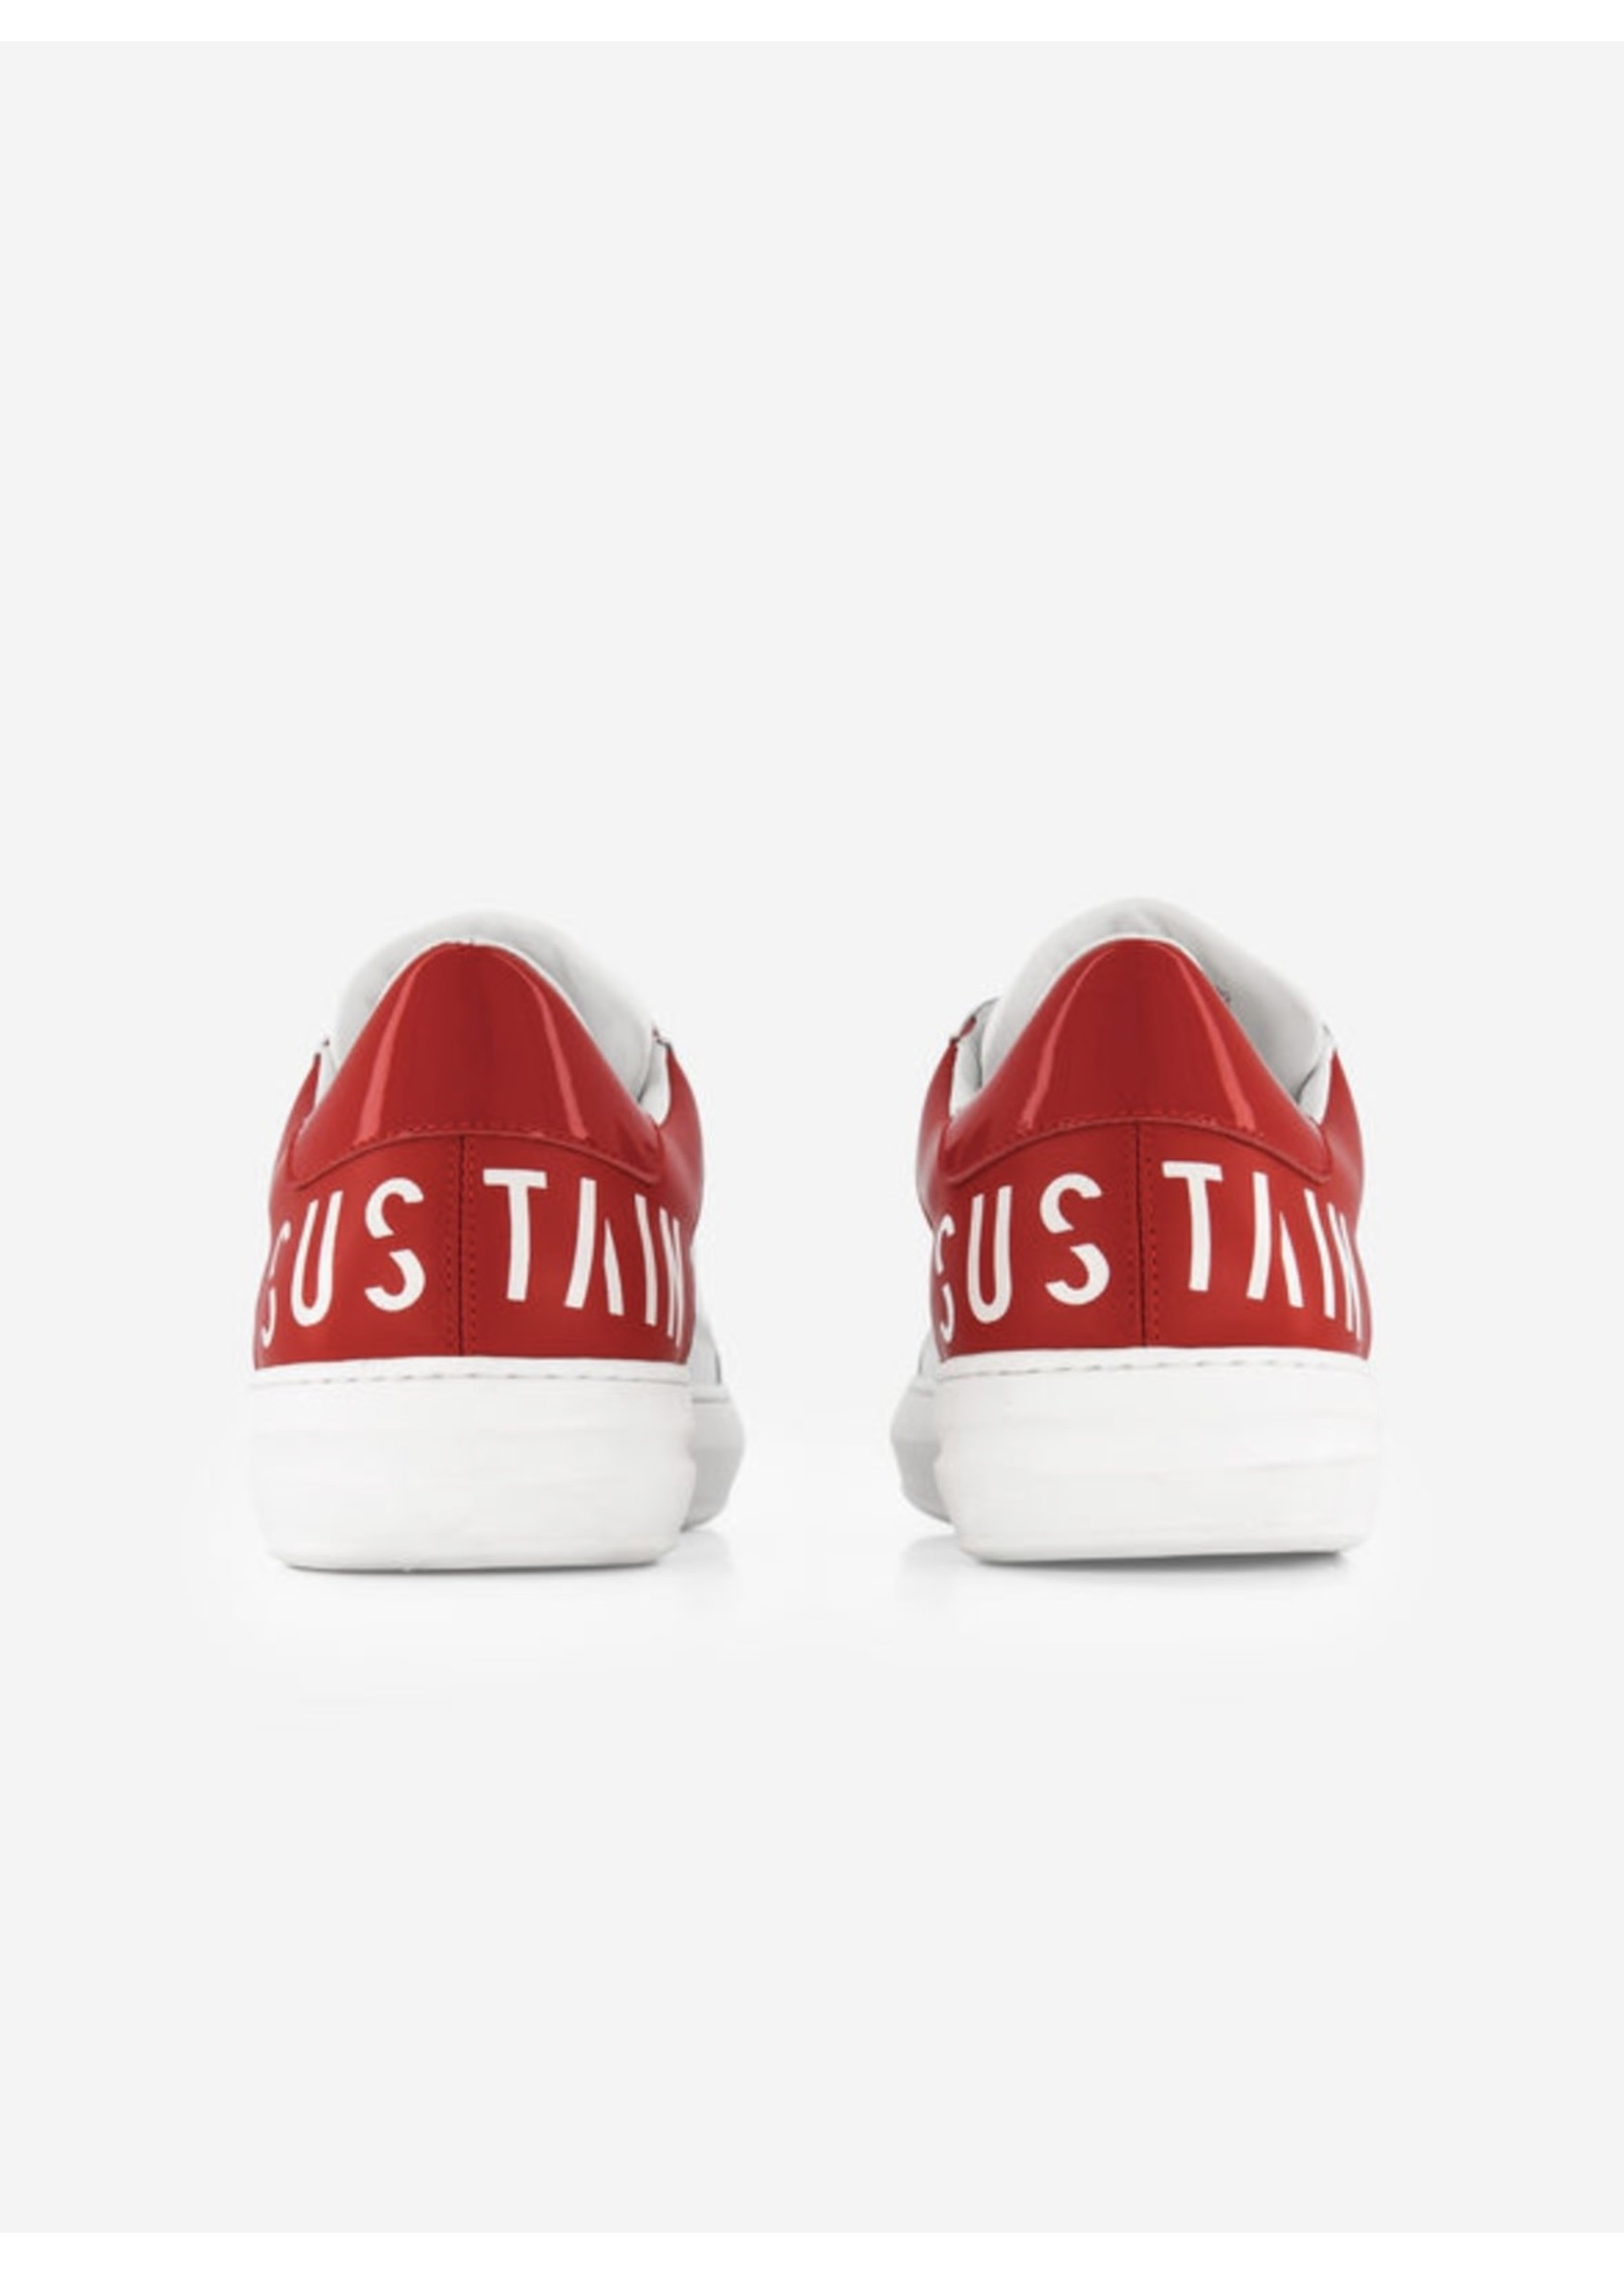 Sustain Sustain Two Tone Sneakers - White/Red